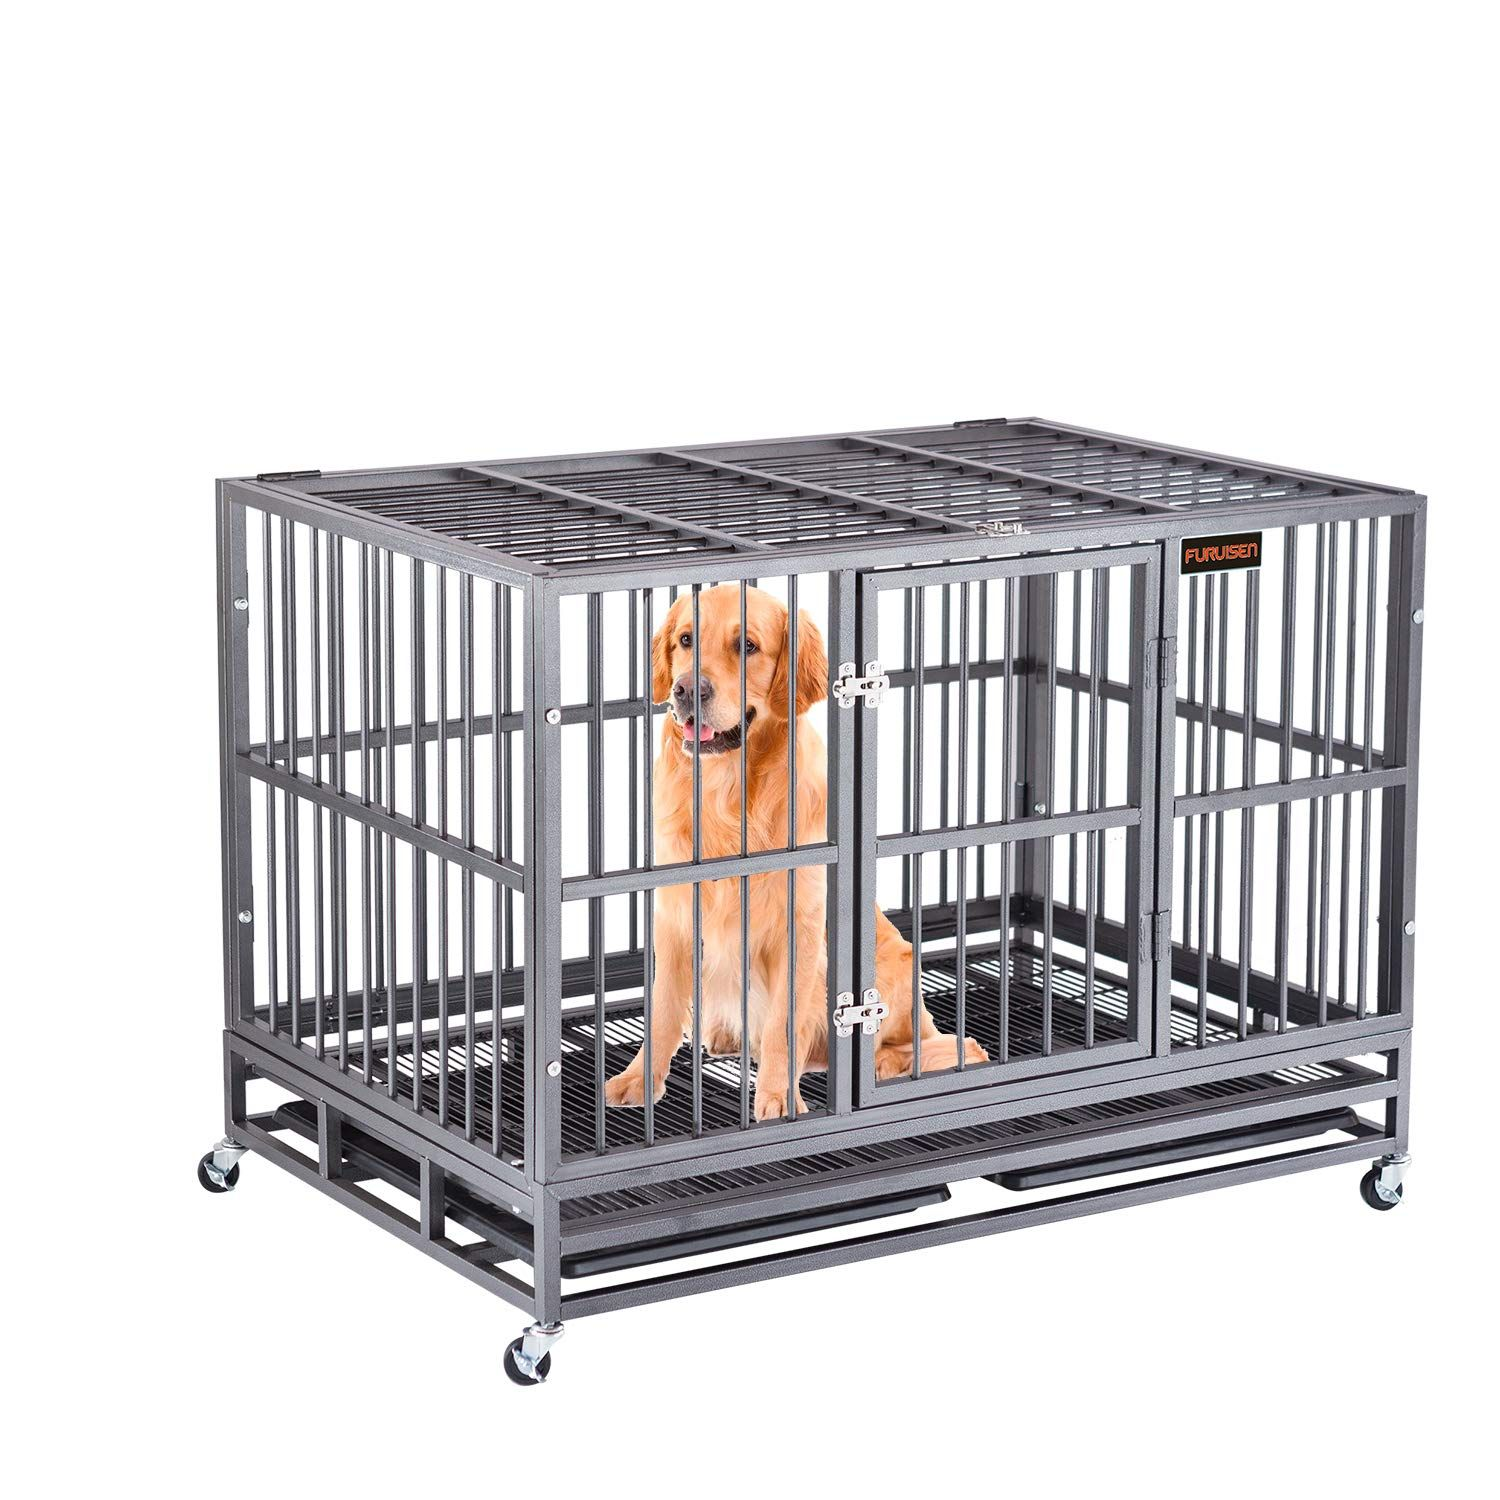 Furuisen 37 Inch Heavy Duty Dog Cage Pet Crate Kennel Playpen With Two Door You Can Get Additional Details At The Heavy Duty Dog Crate Pet Kennels Dog Crate